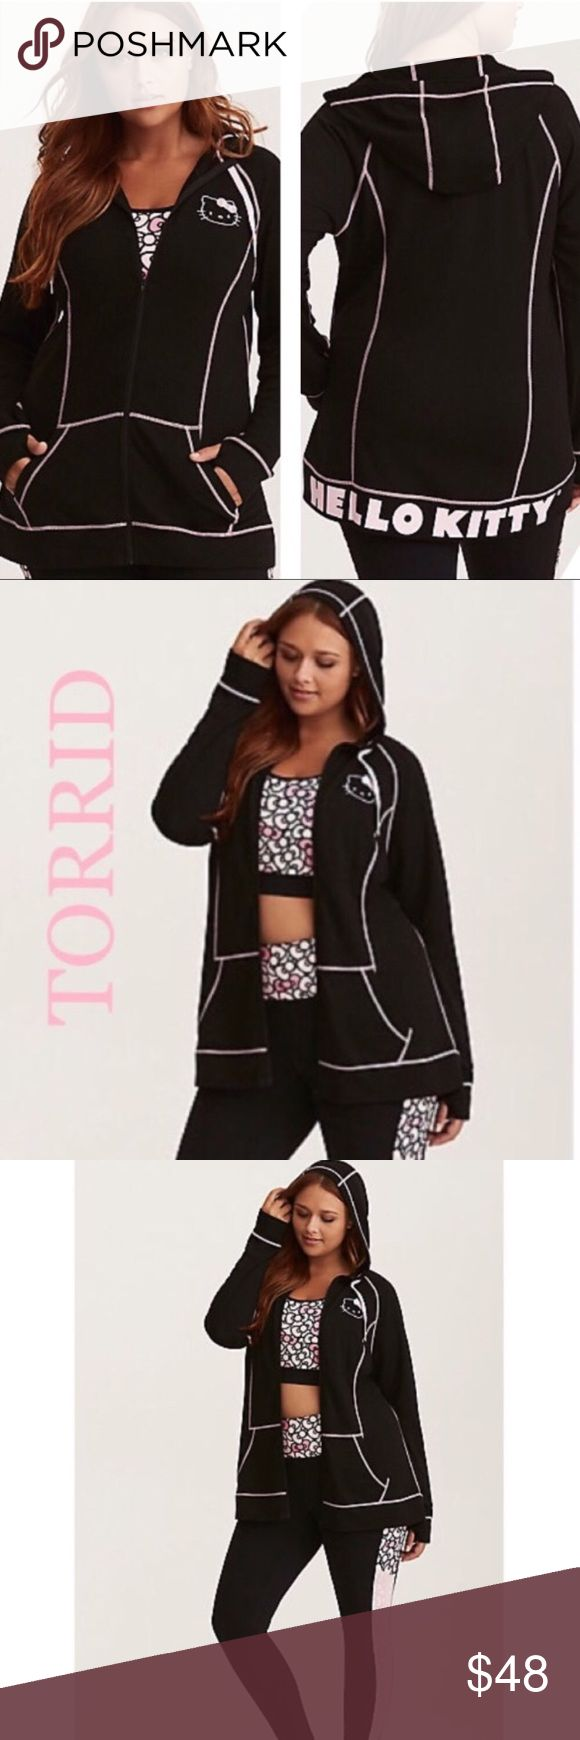 🆕Torrid Hello Kitty hoodie This Torrid lightweight hoodie is easy to throw on and off with an embroidered Hello Kitty head. Side pockets and thumbholes lend functionality with a zip front that keeps it fitted. Comfy drawstring hood that shapes to your head Nylon/spandex 🎀🎀🎀matching sports tops in my closet while they last🎀🎀🎀  New with tags purchased at the Torrid store torrid Tops Sweatshirts & Hoodies